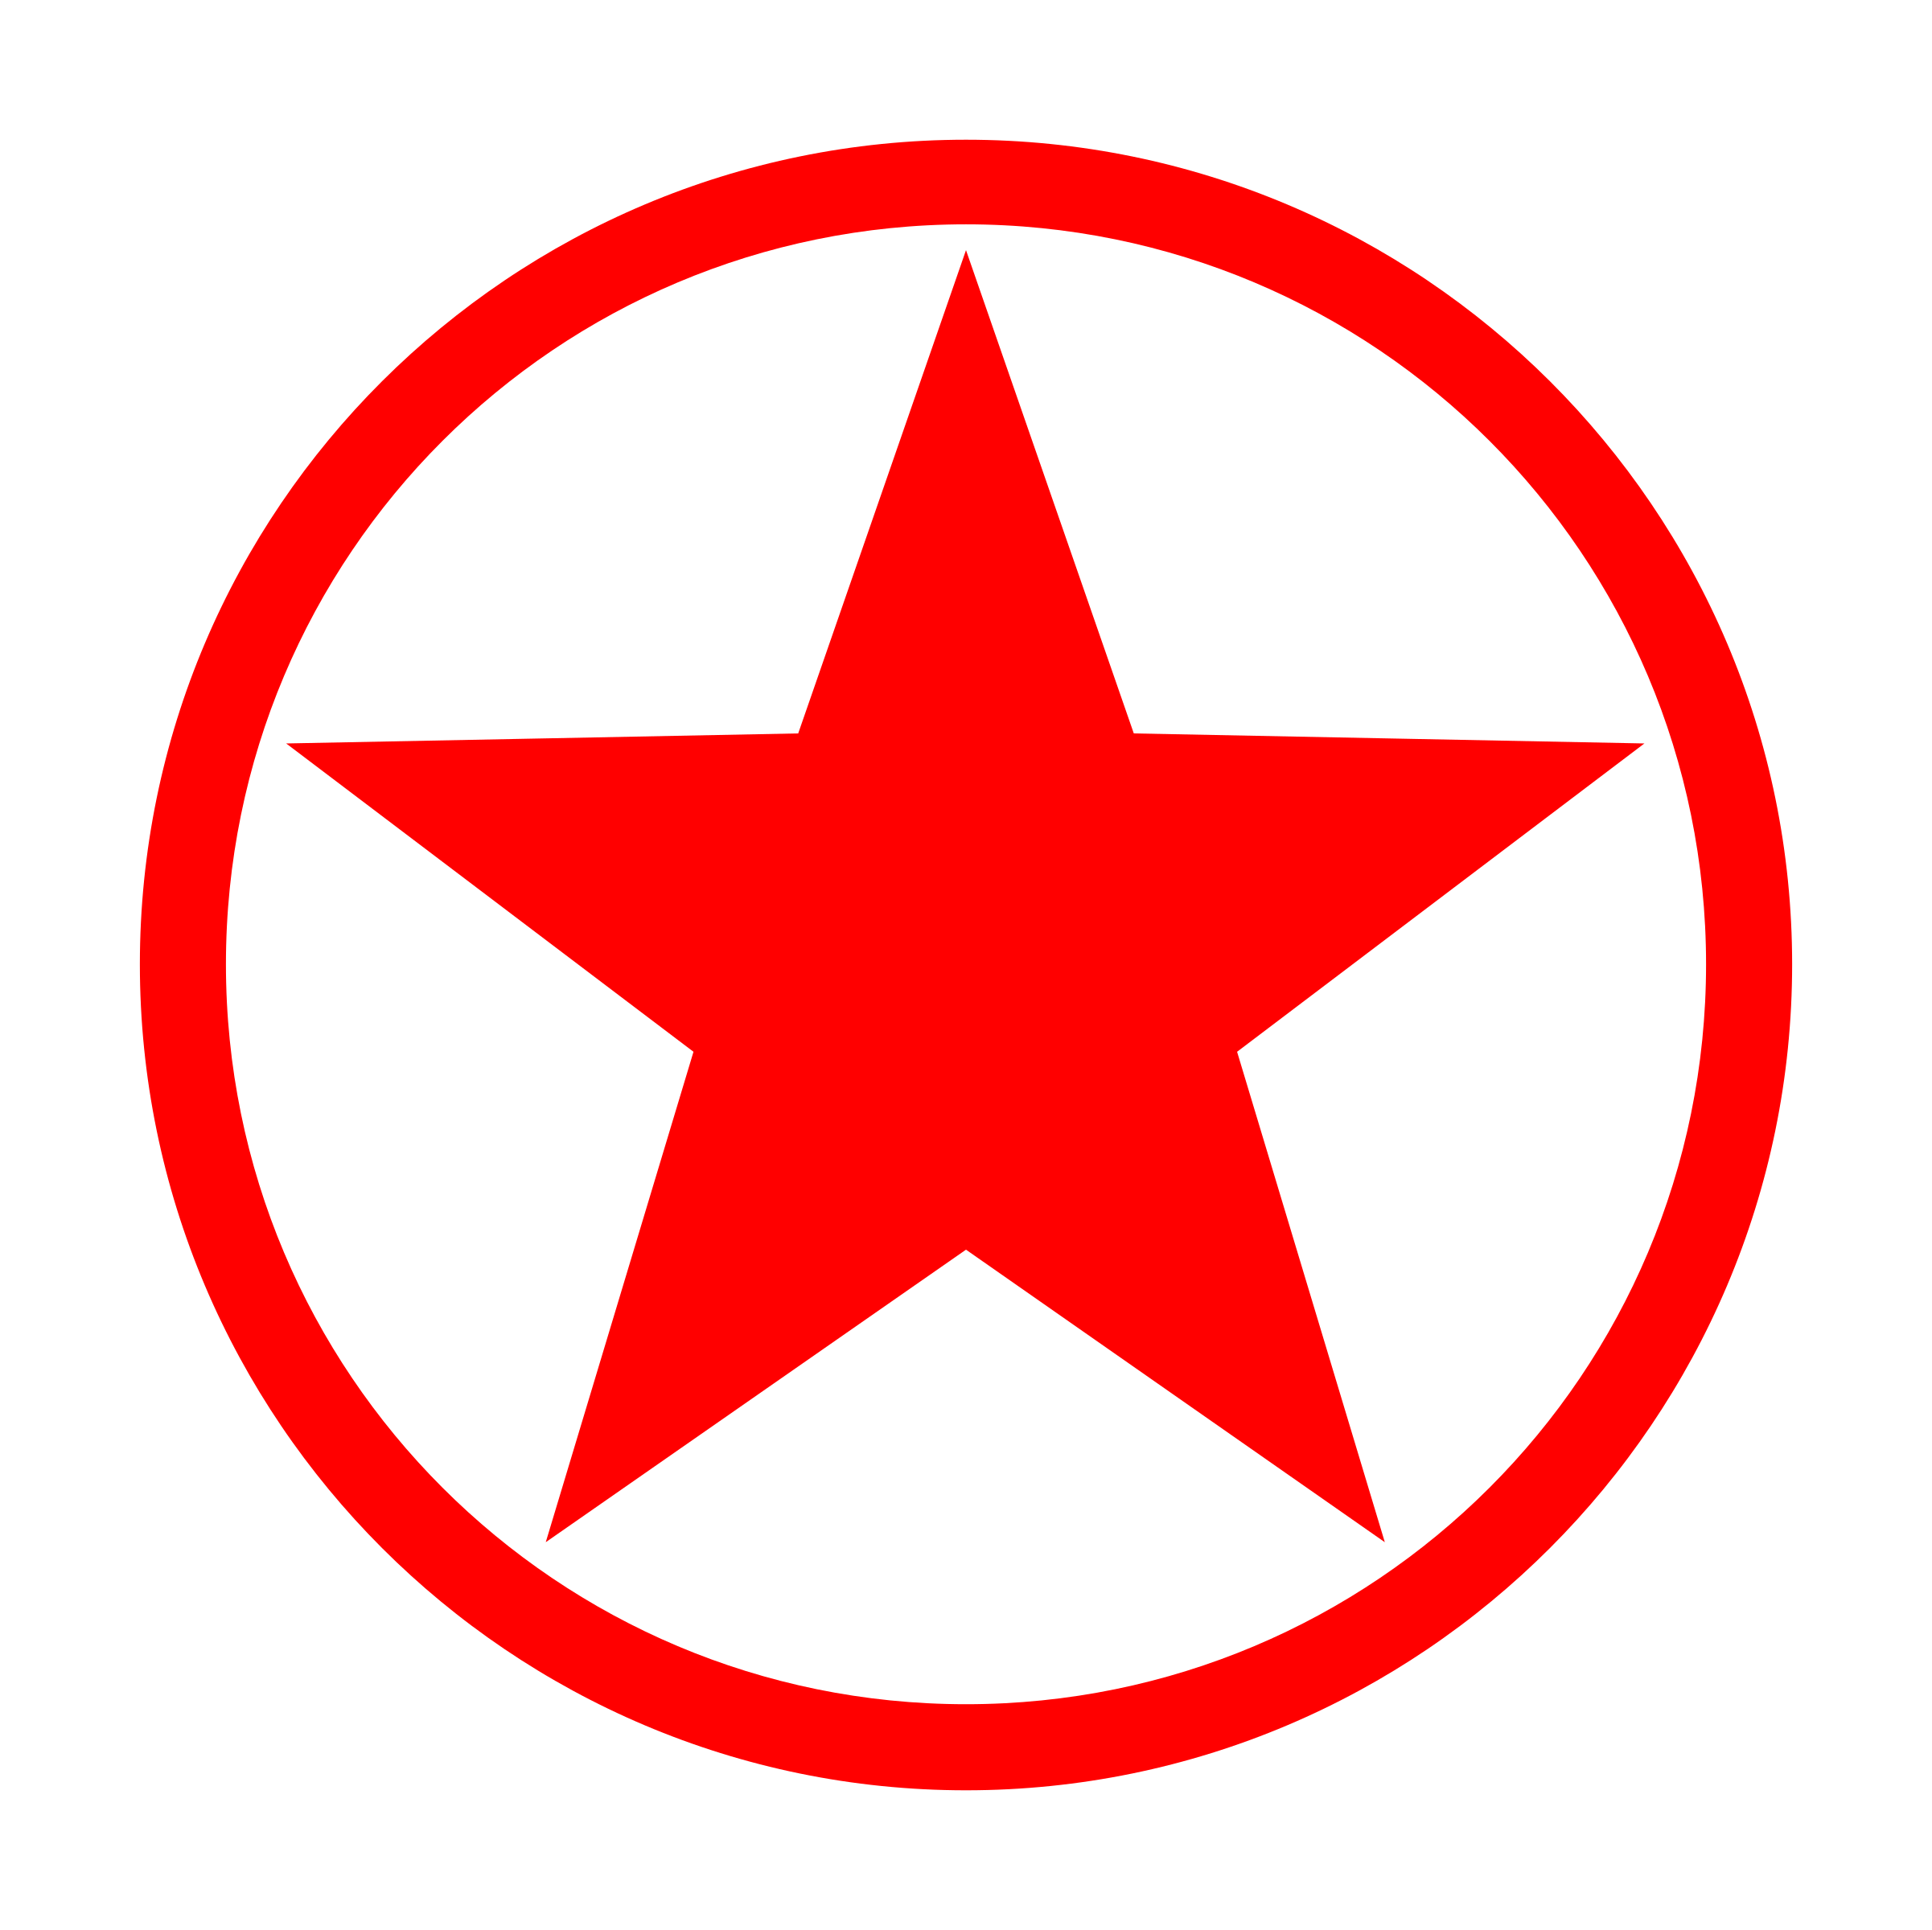 Circle clipart red. Star in big image